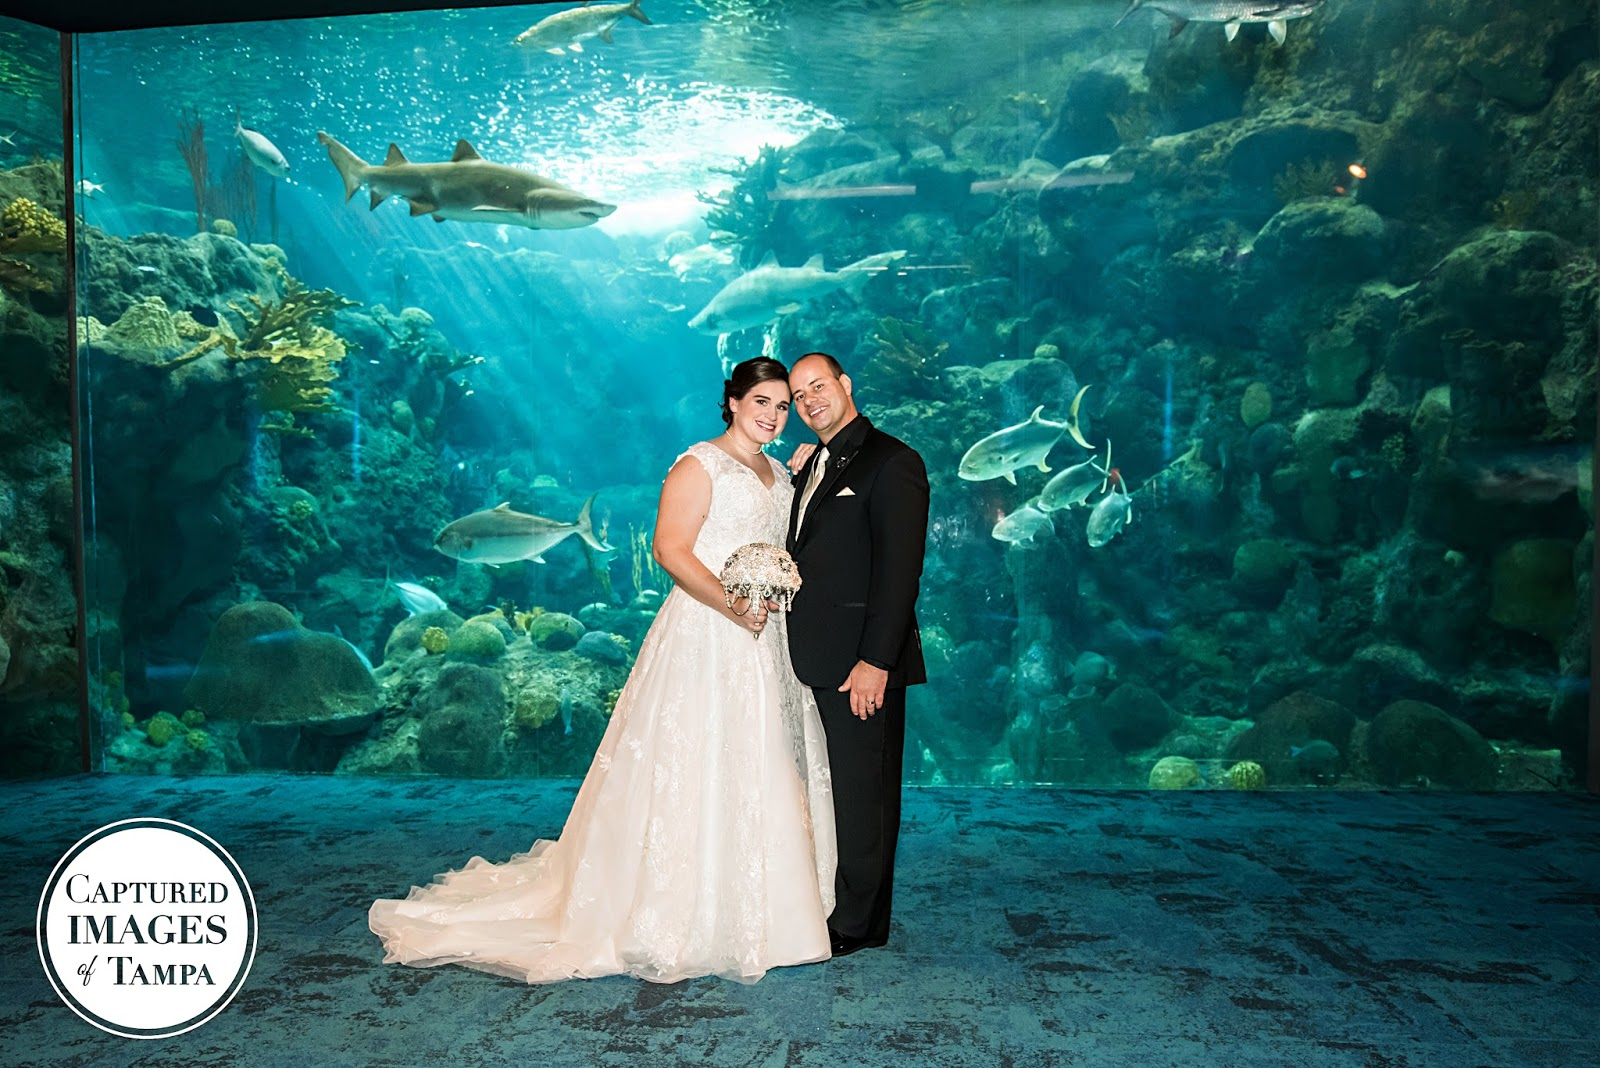 Jayme Lewis 06 17 Tampa Wedding Photography The Florida Aquarium